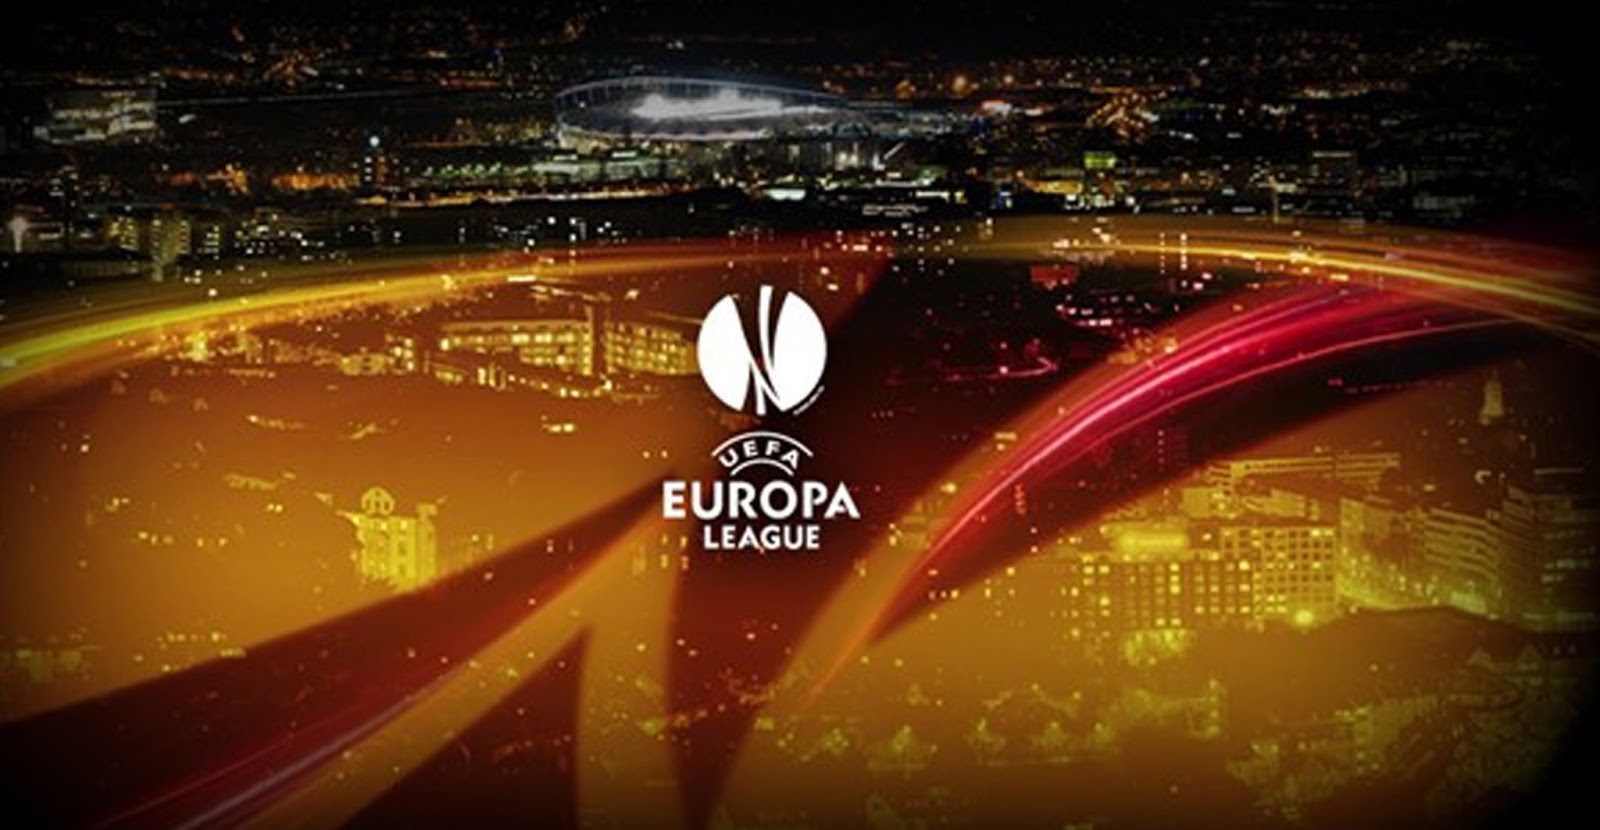 UEFA Europa League Week 6: Fixtures | Vibes NG